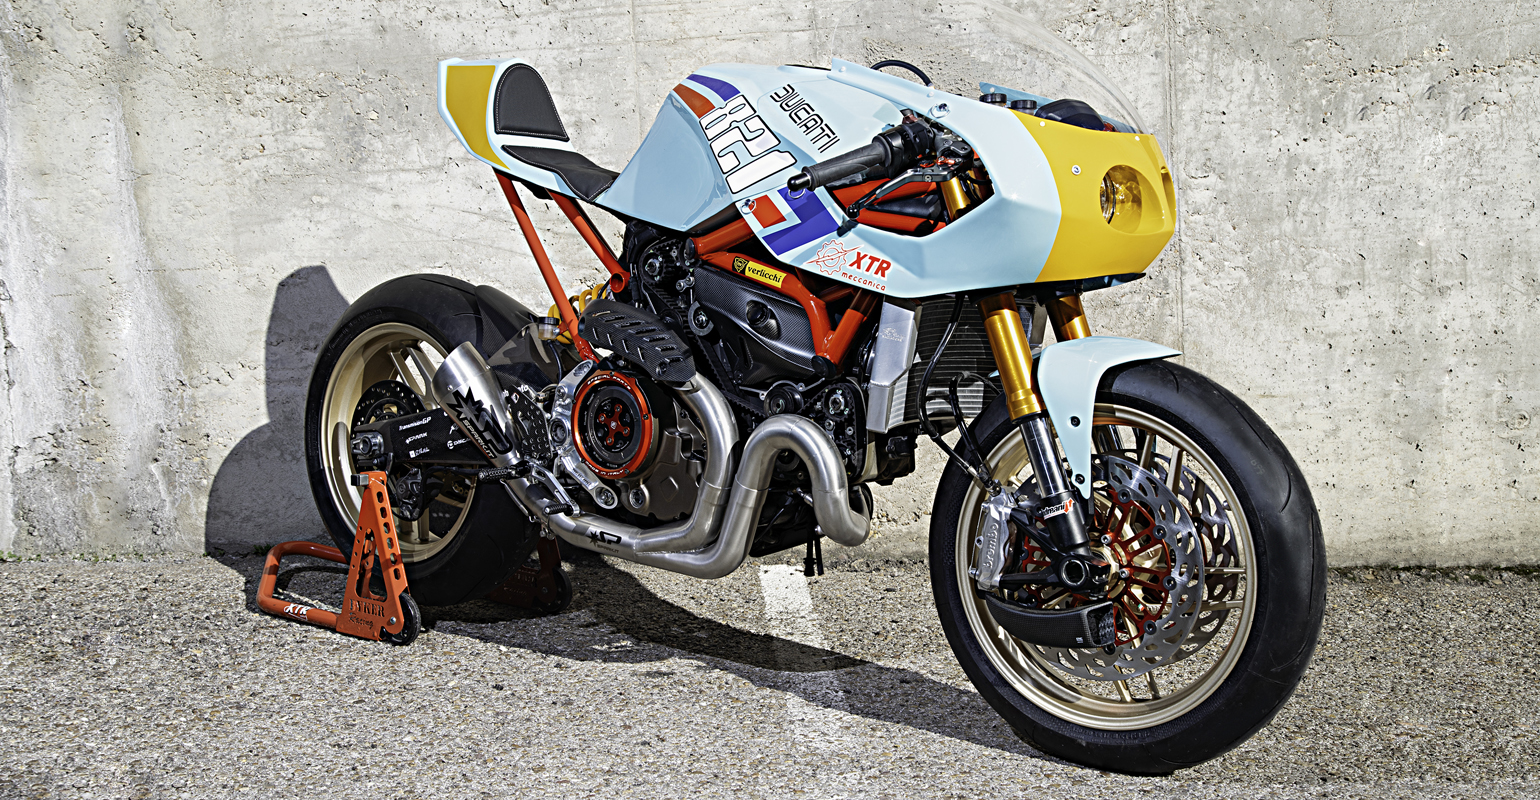 Ducati Monster 821 Pantah by XTR - The Bullitt